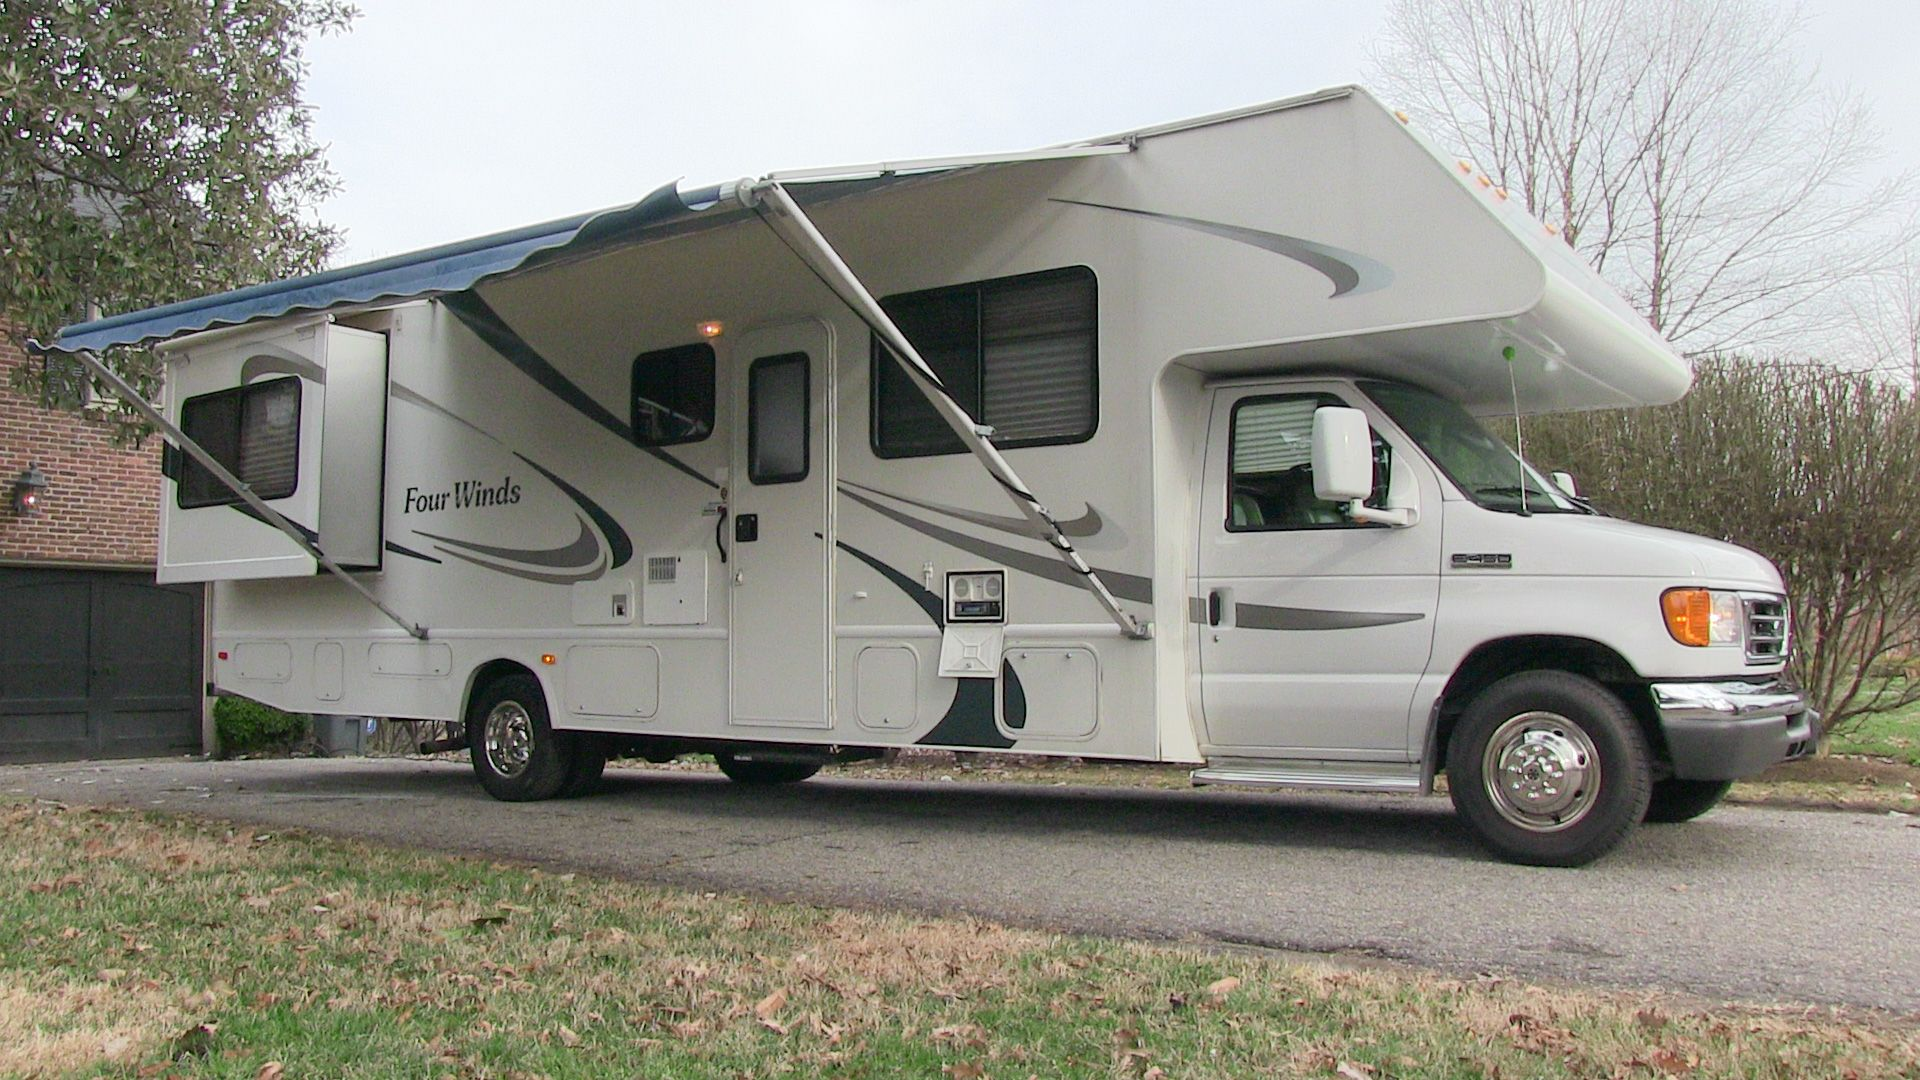 2006 Four Winds Chateau 31f Used Class C Motorhome Rv For